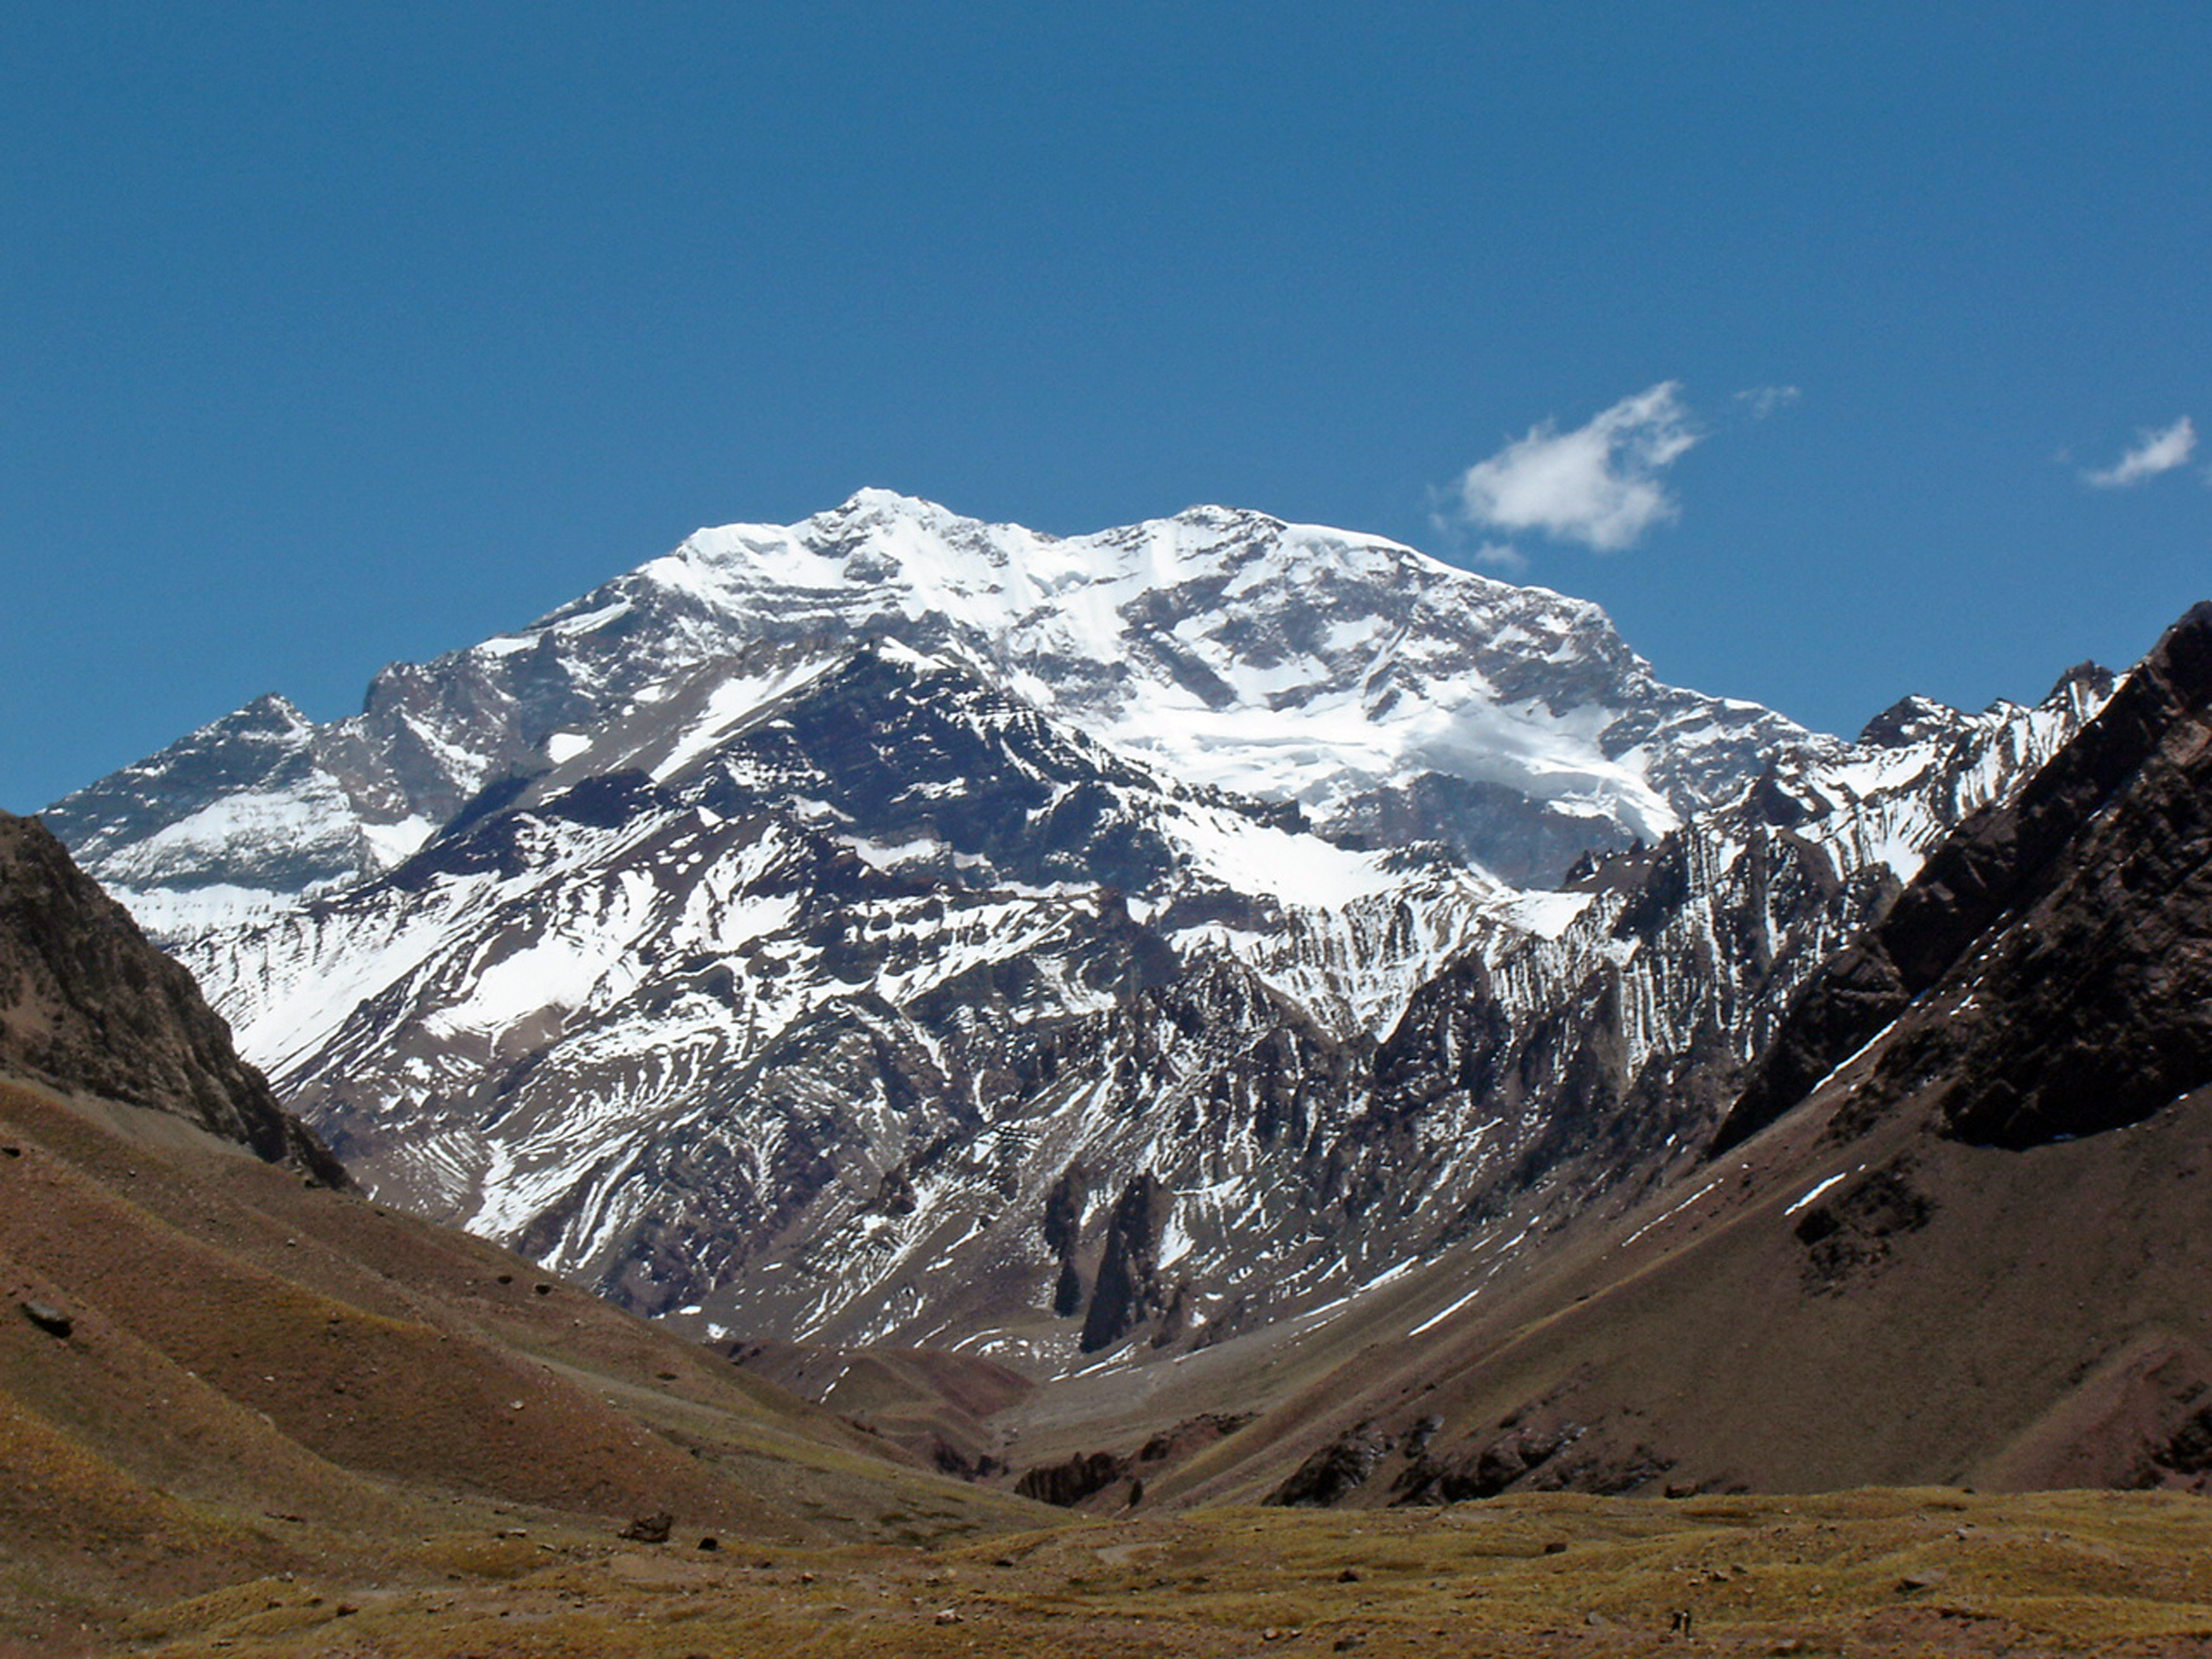 List of mountains in the Andes